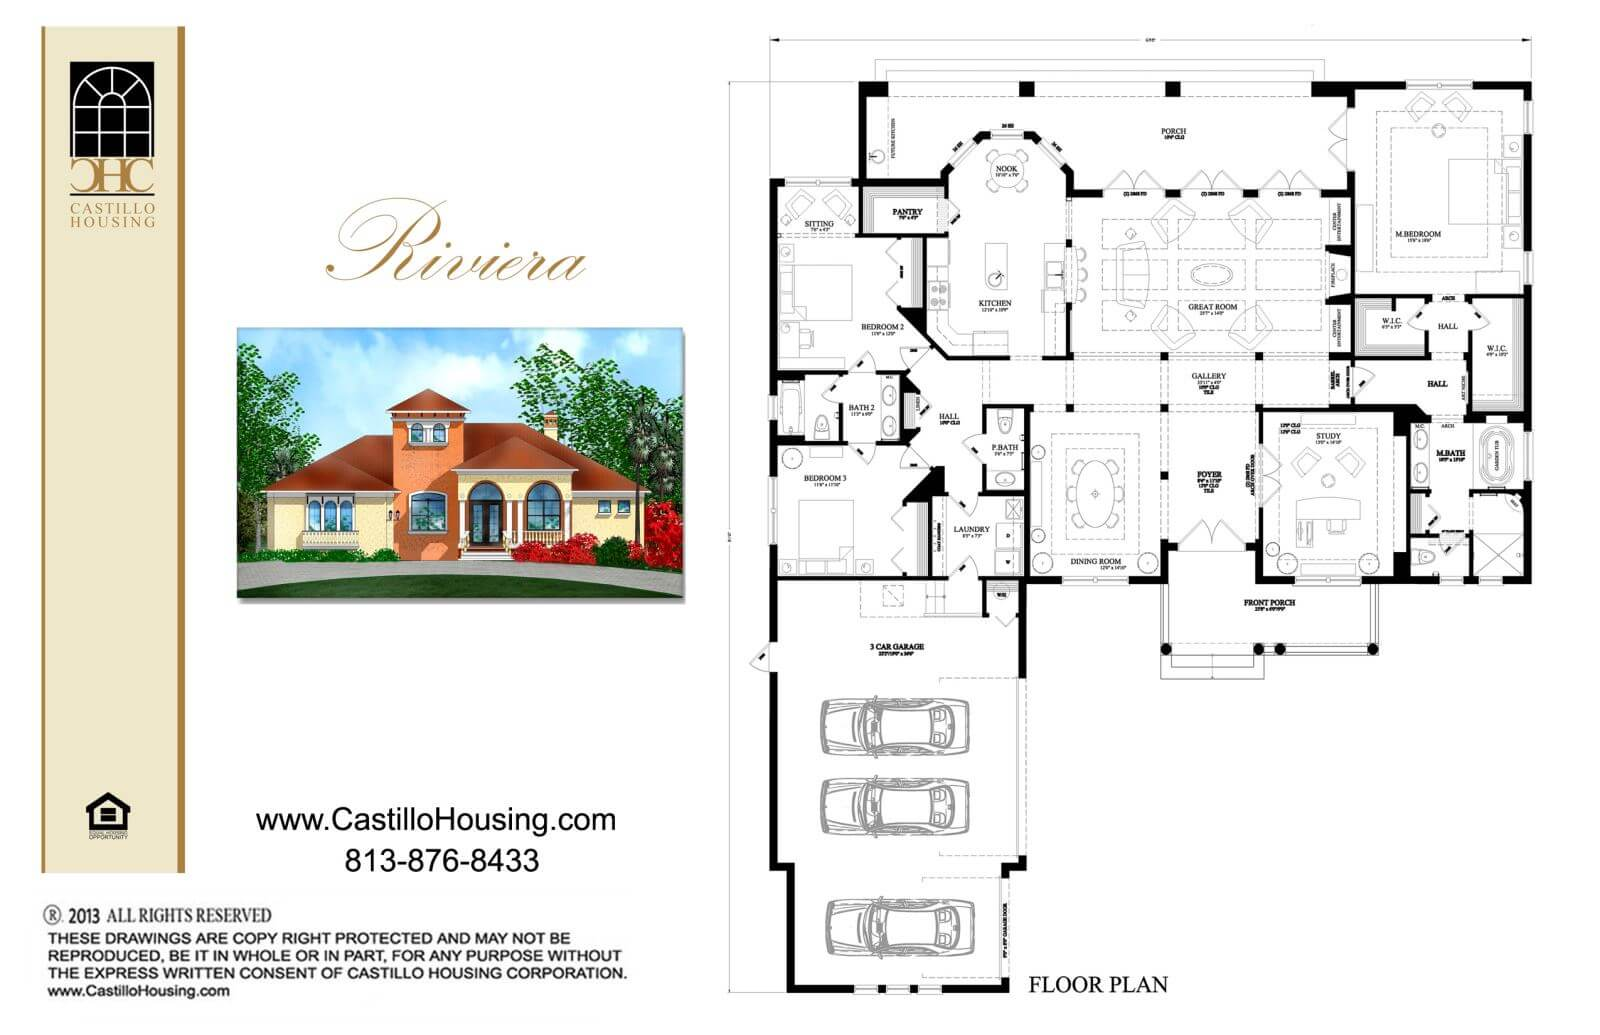 Floor Plans,2,501 SQ FT TO 3,000 SQ FT,1047